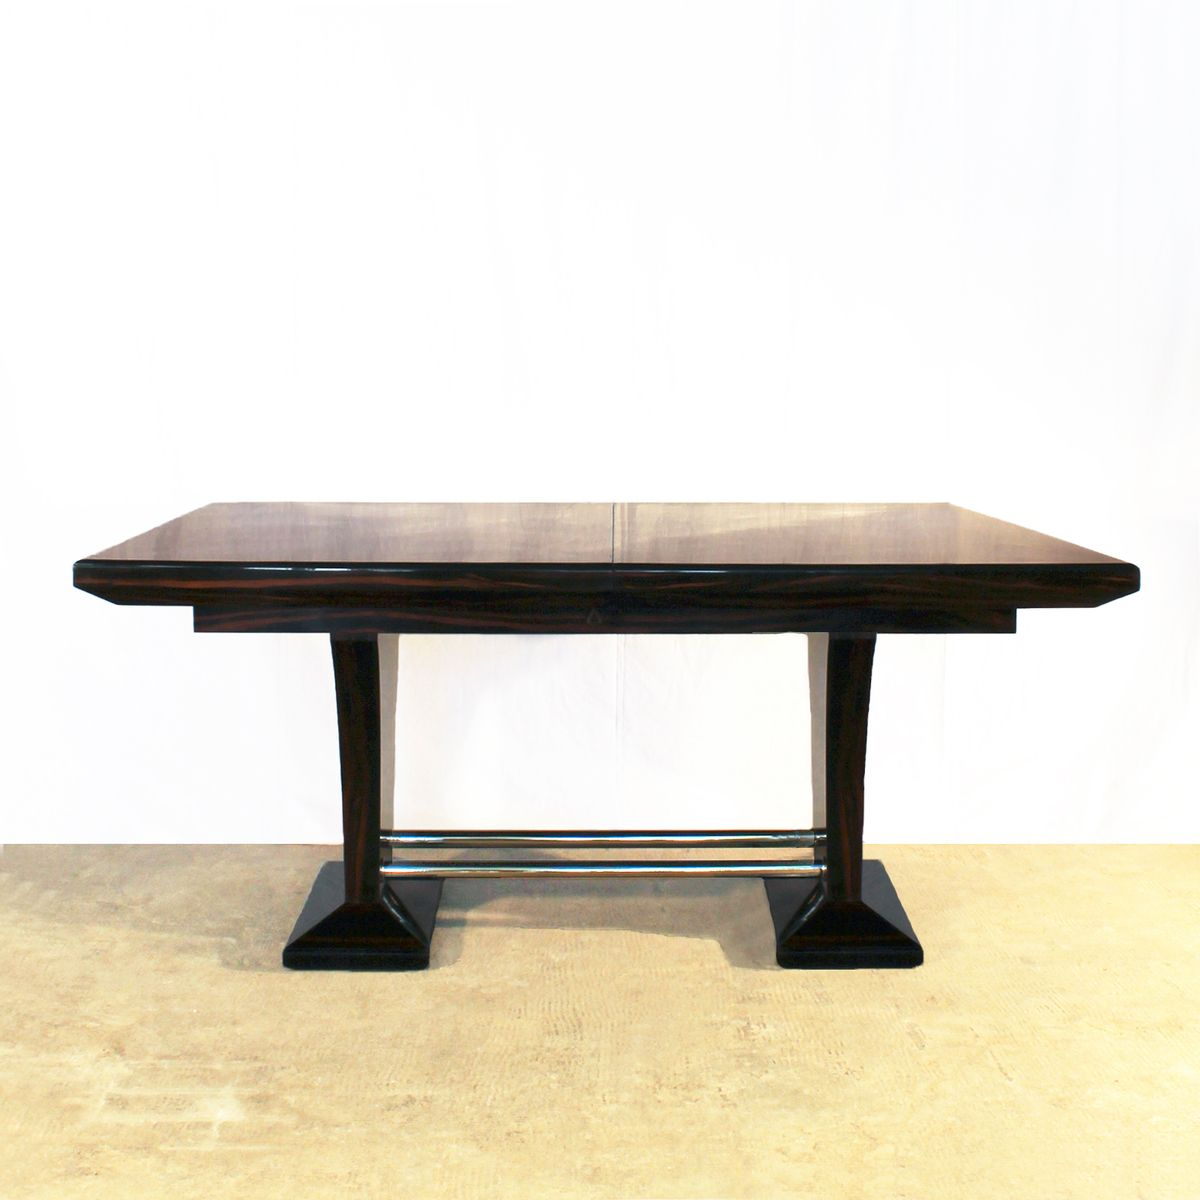 Art Deco Dining Table With Extension Leaves 1930s